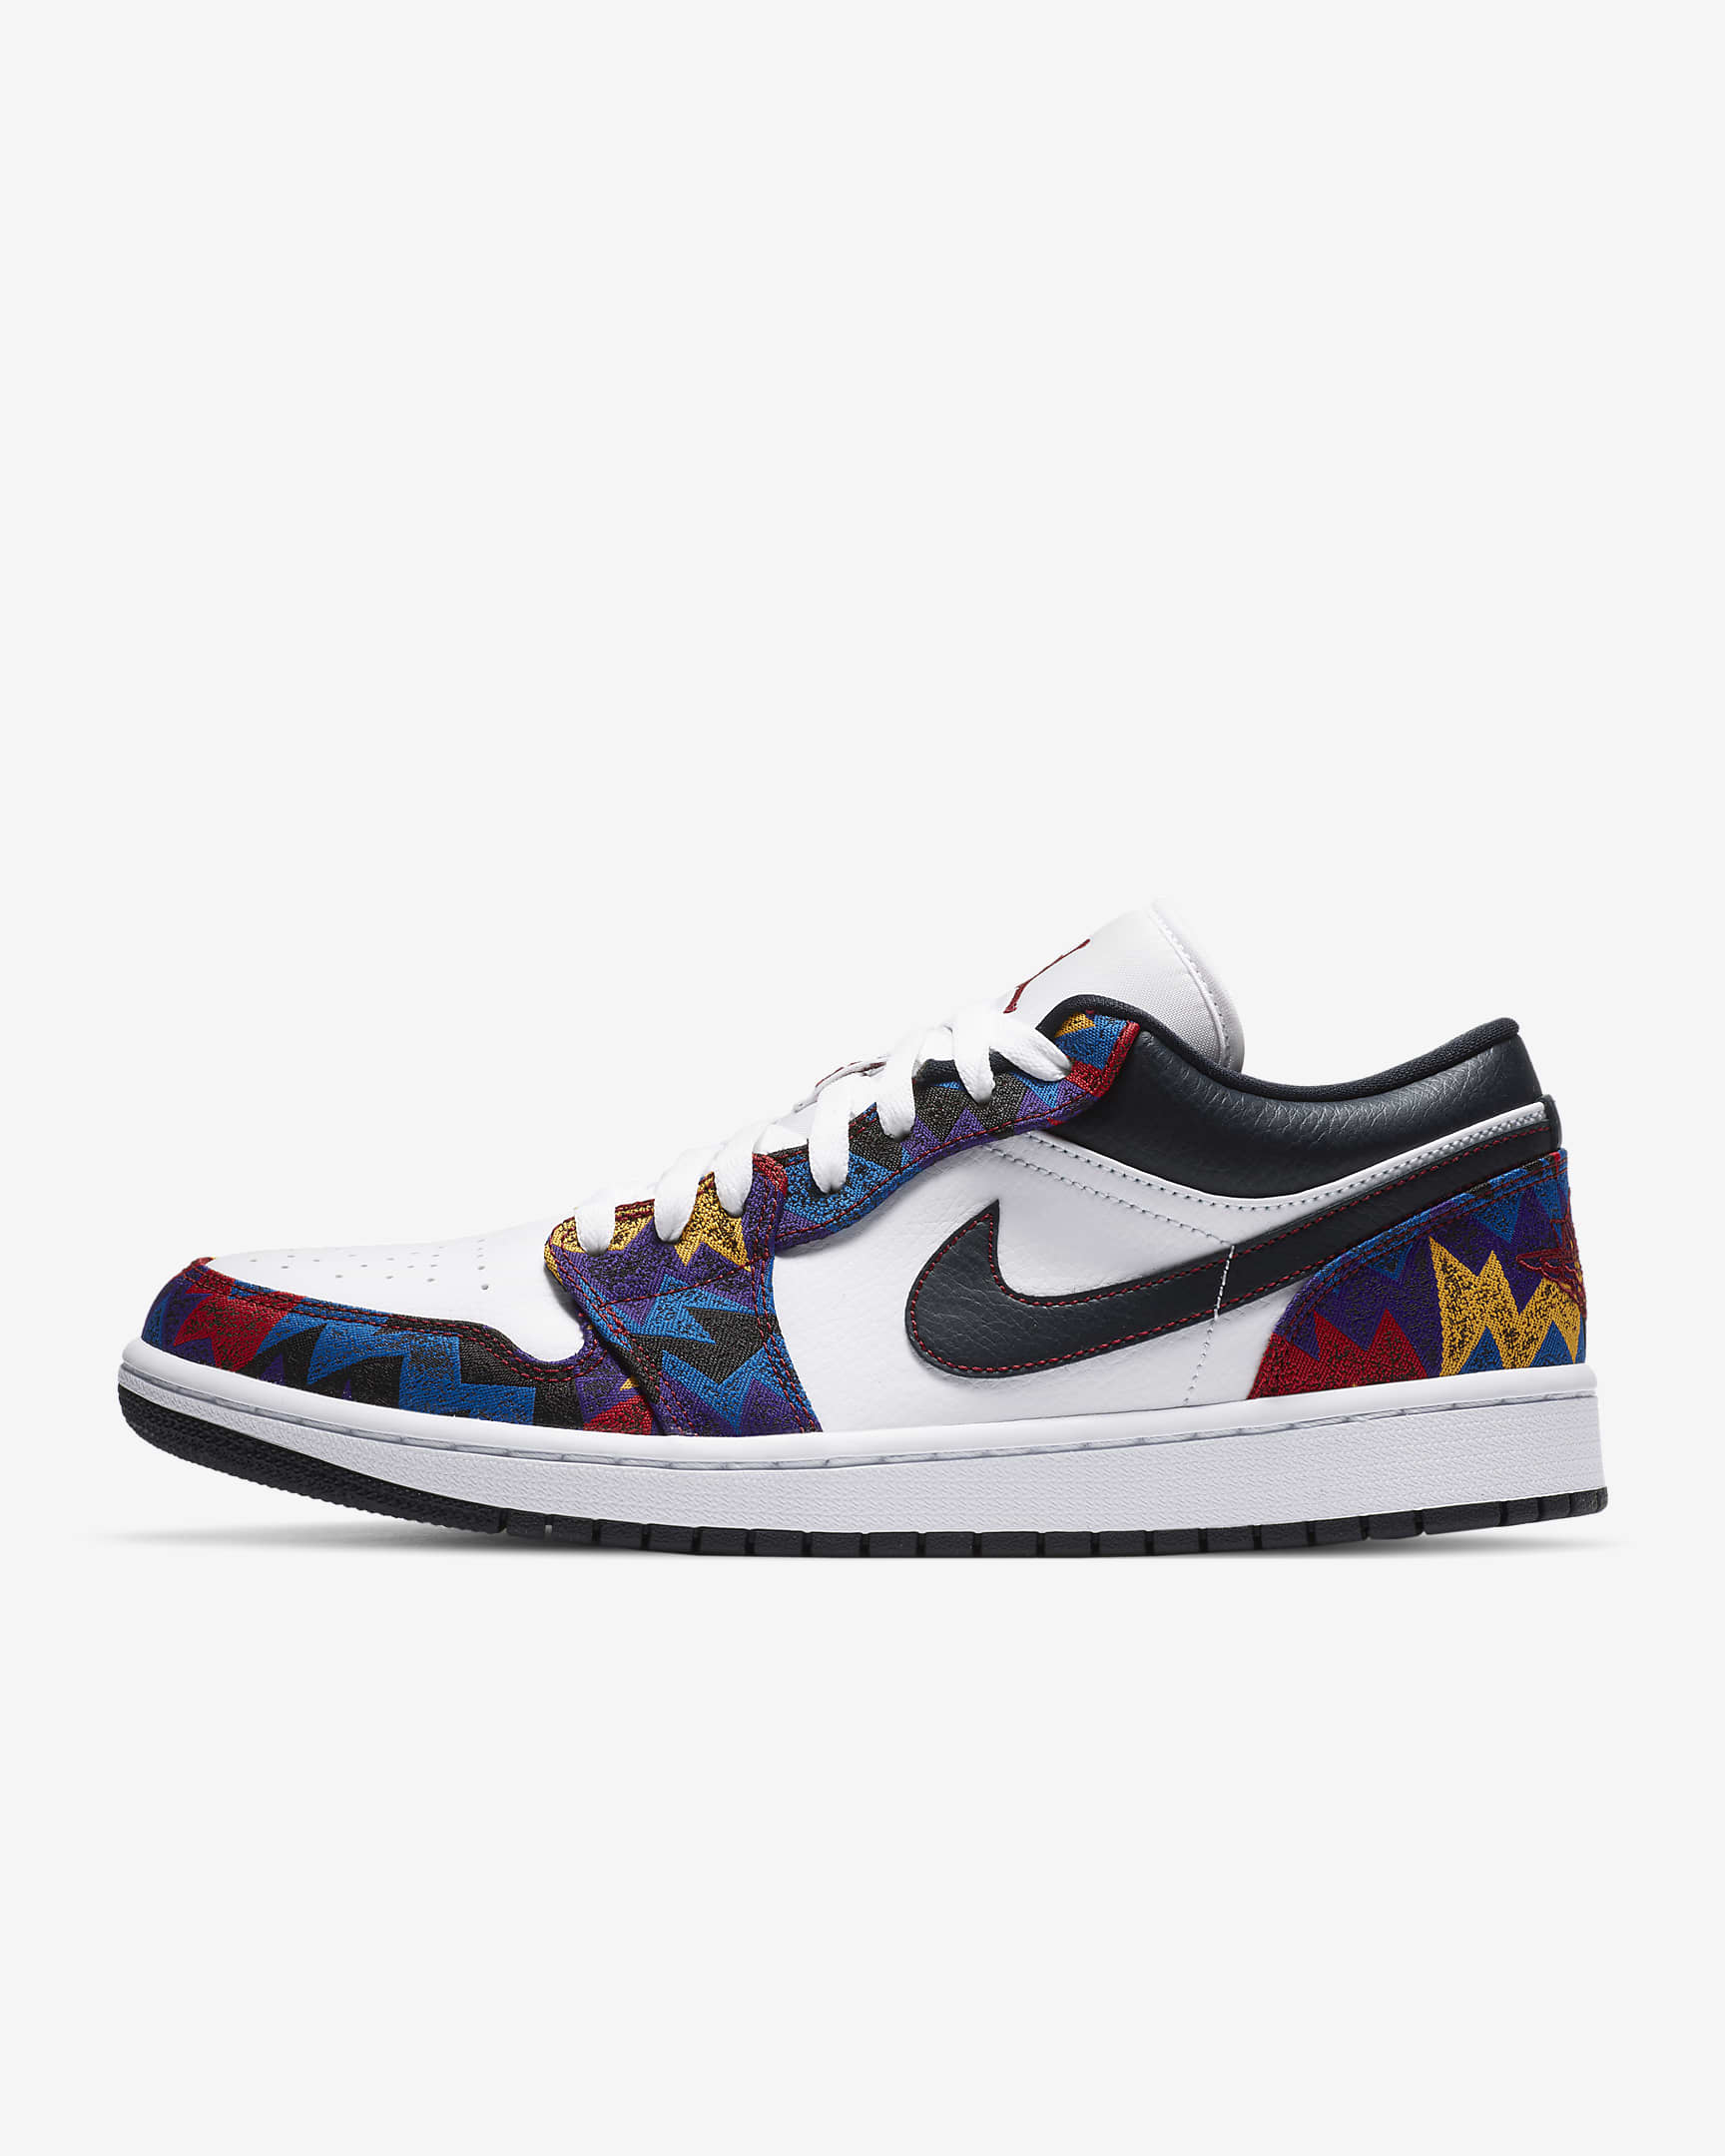 Nike Air Jordan 1 Low SE Men's Shoe